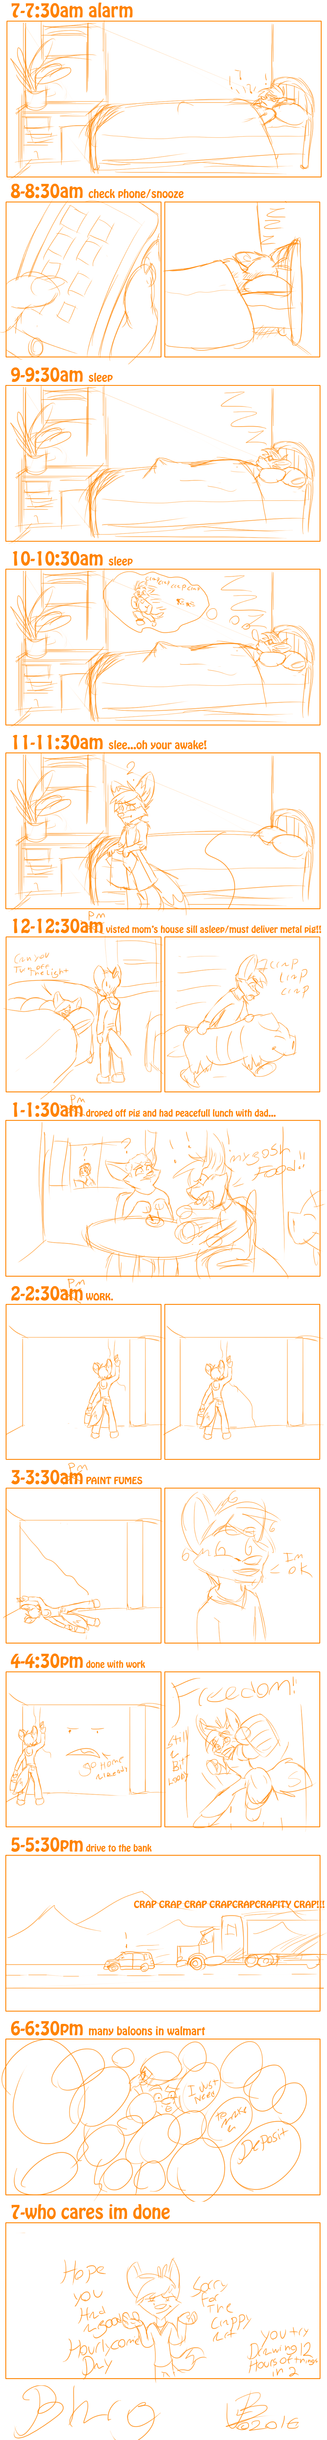 Hourly comic day! by JLindseyB